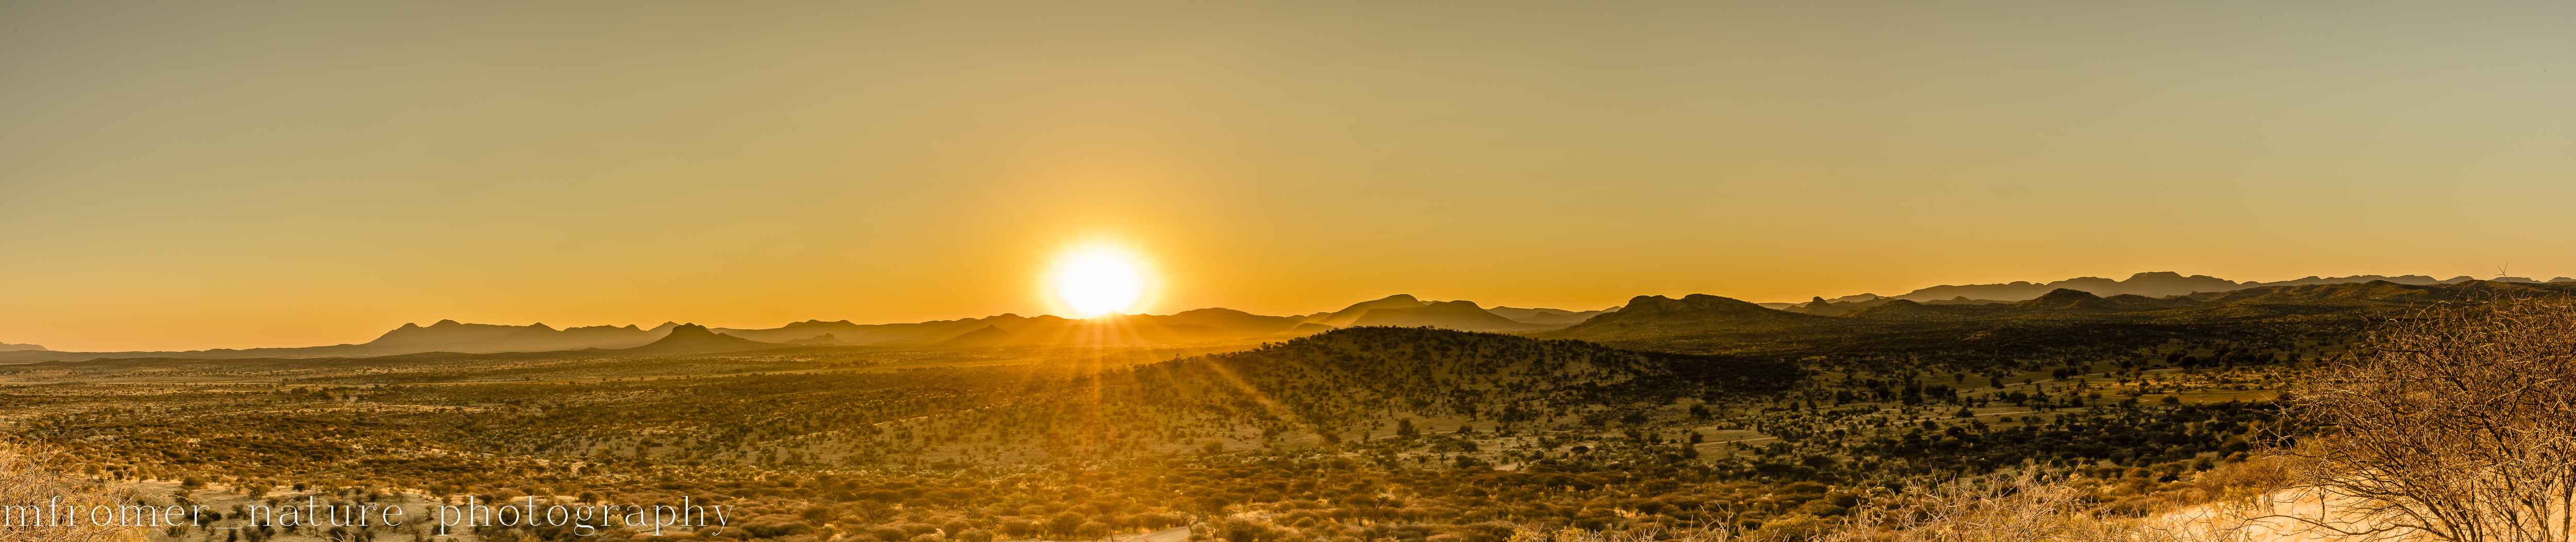 About an hour from Windhoek, Namibia